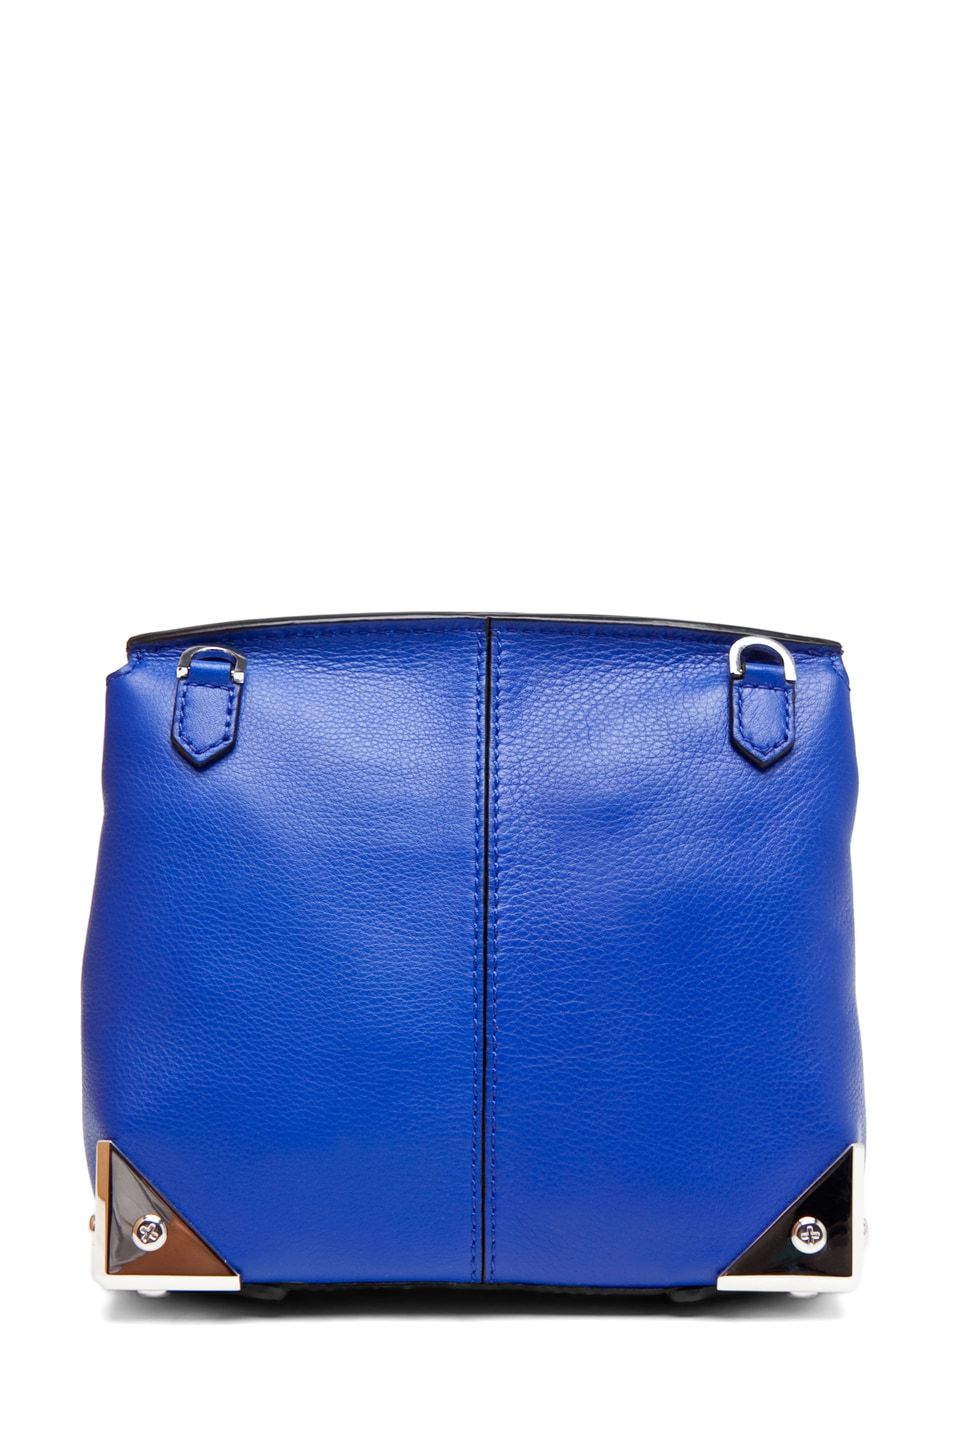 Image 2 of Alexander Wang Marion Sling in Azure